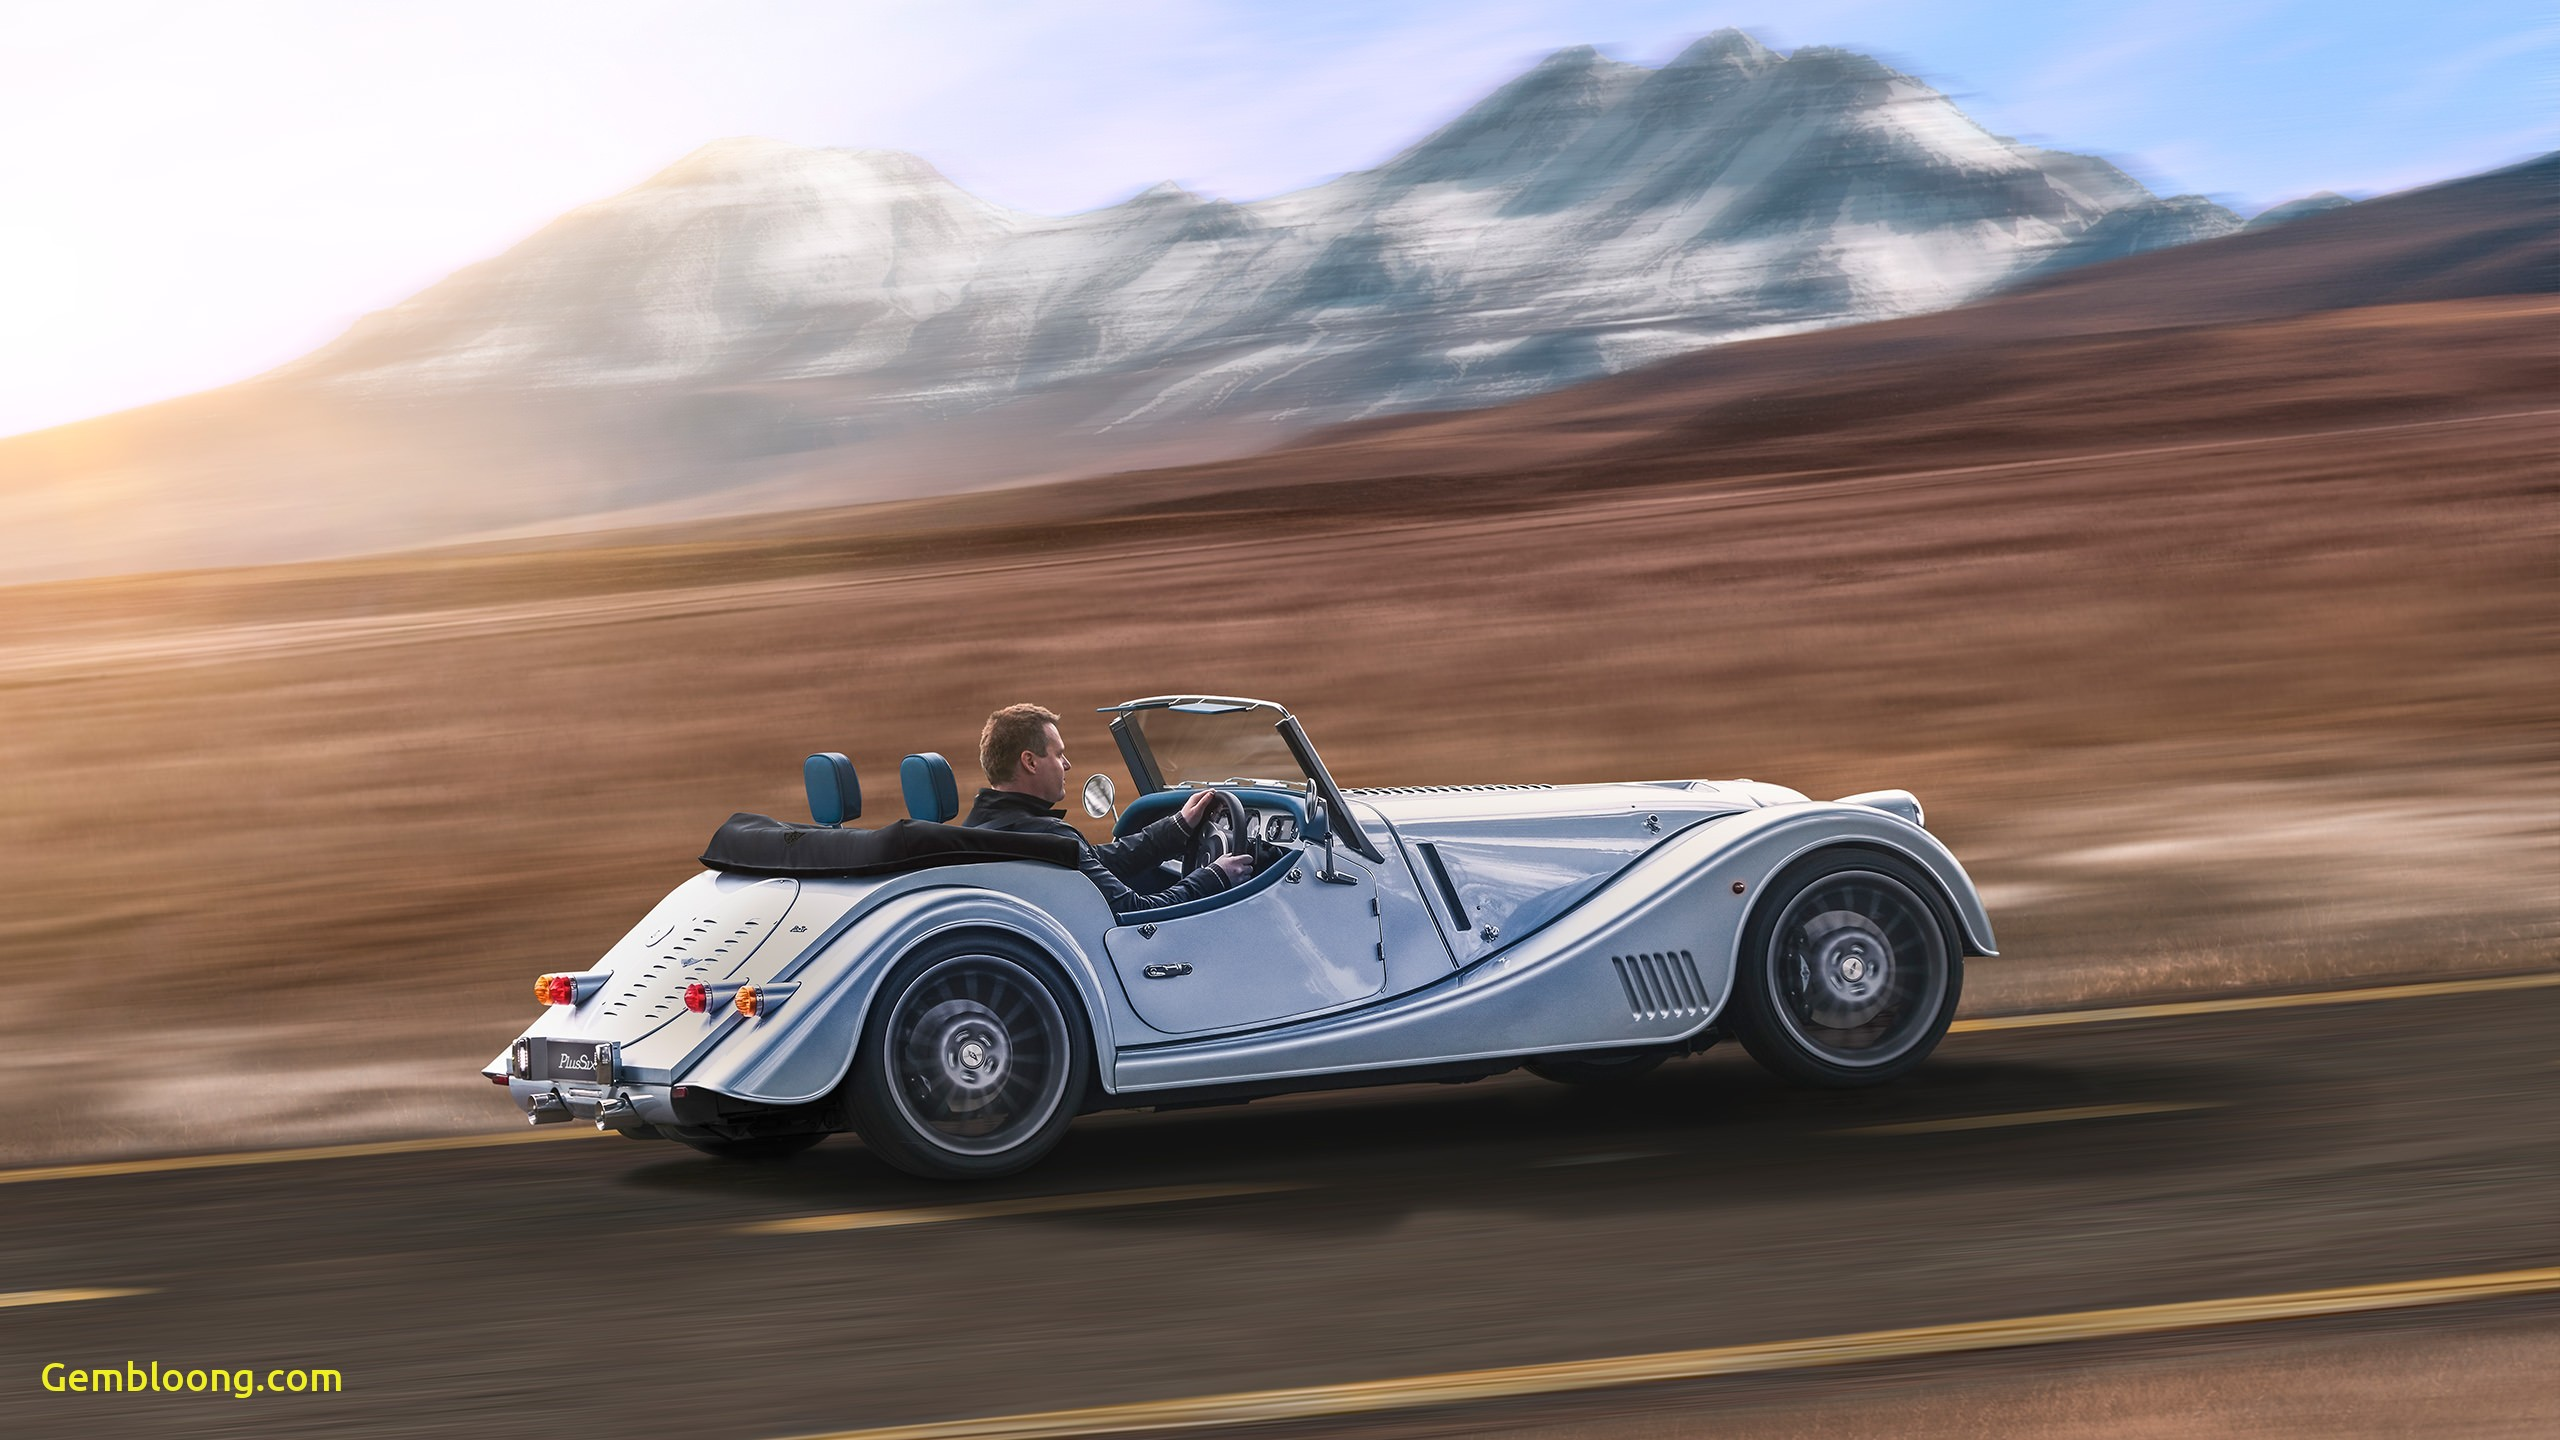 Rental Cars for Sale Near Me Awesome Morgan Motor Pany